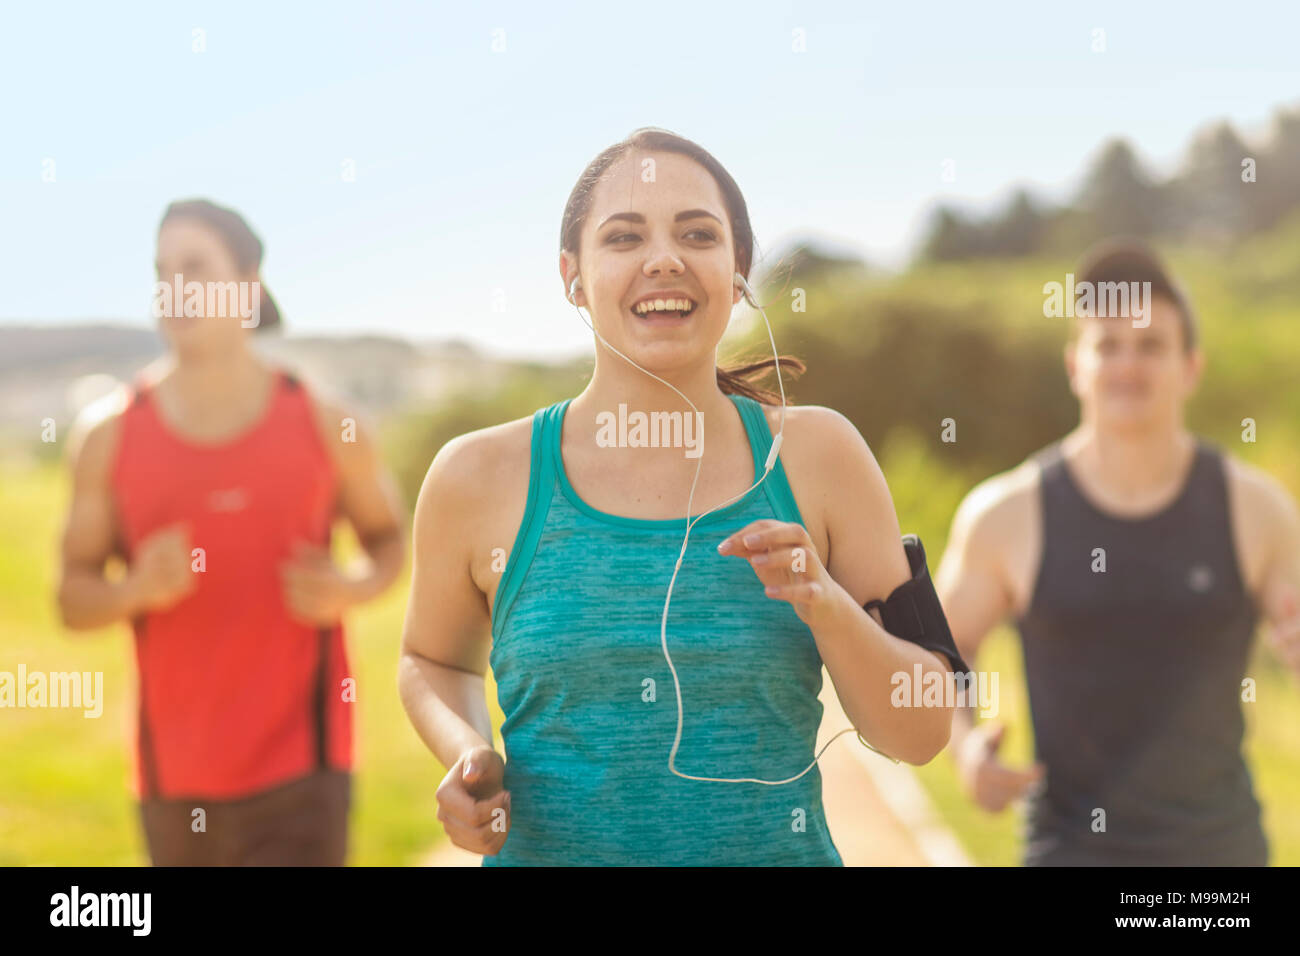 Group of friends running together - Stock Image